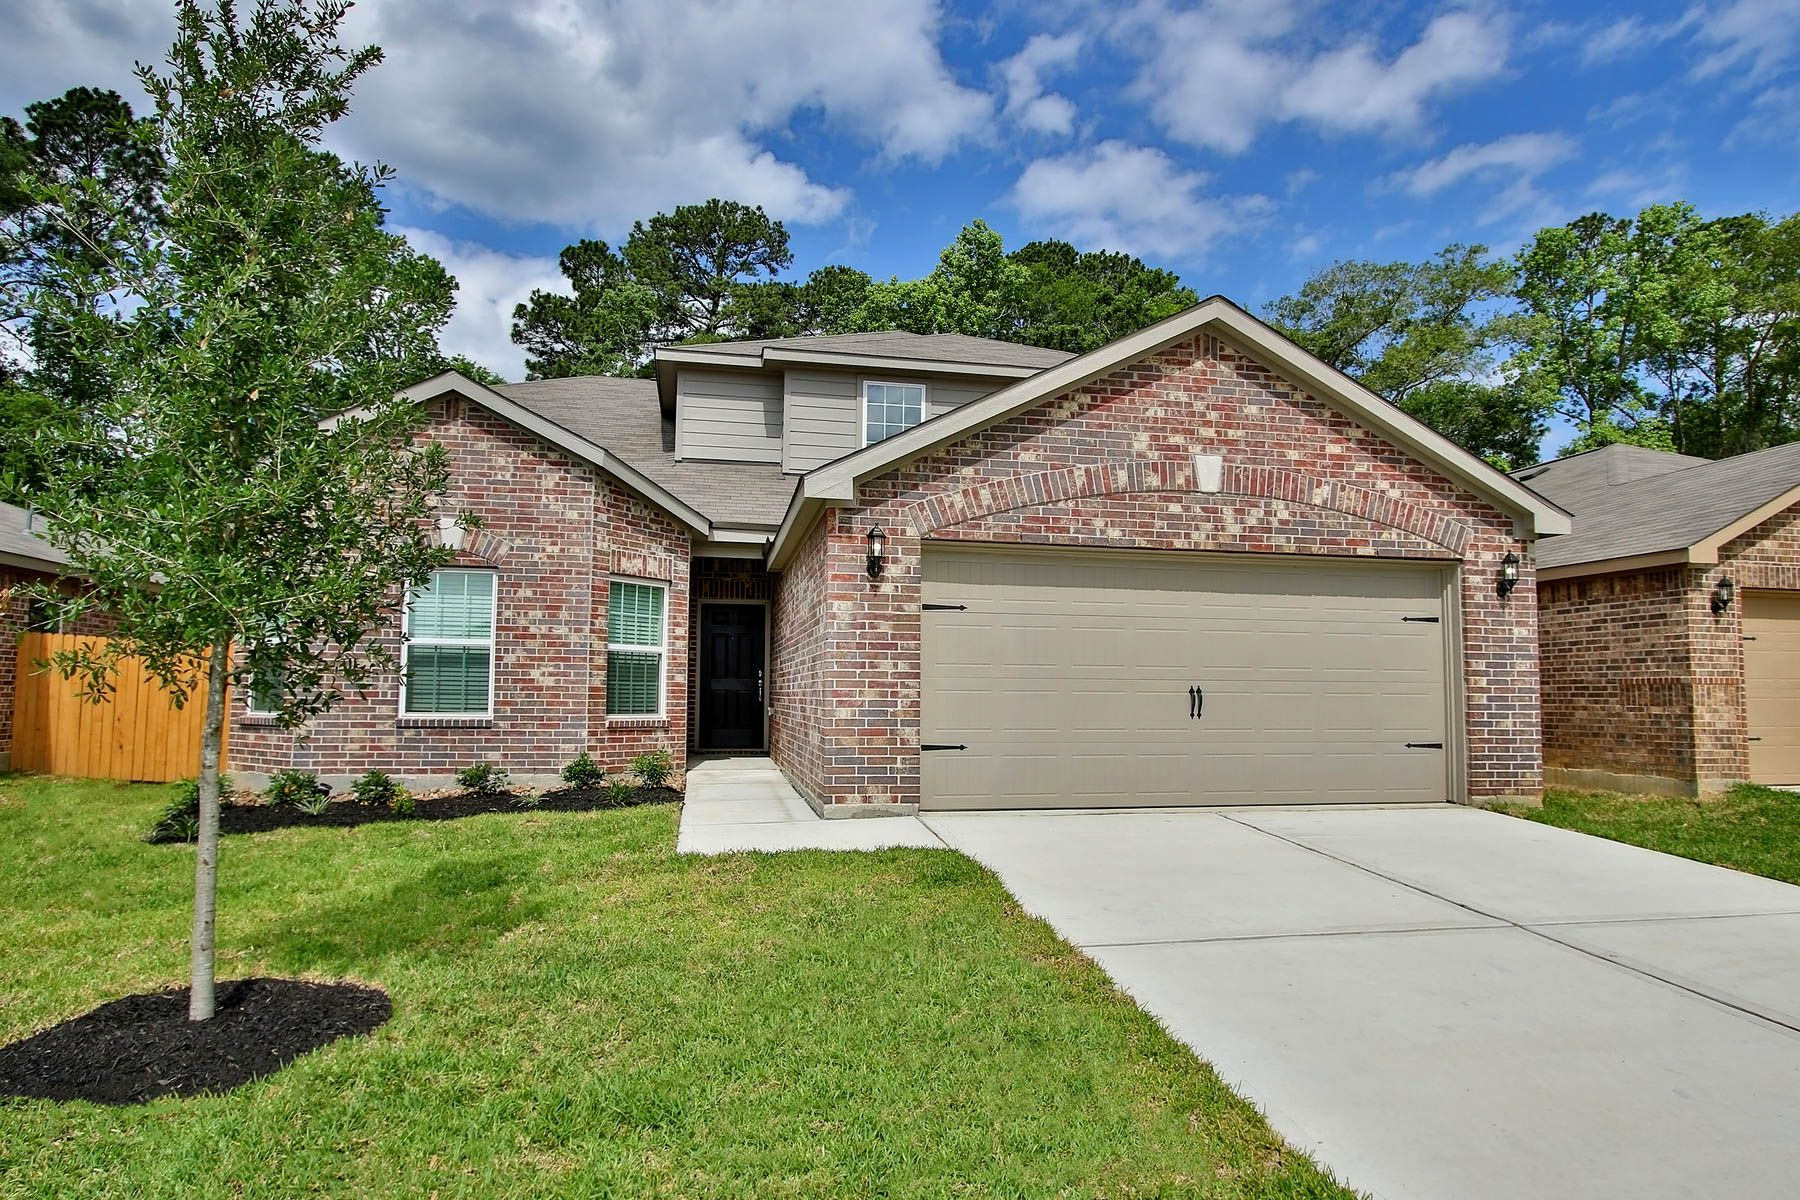 The Cypress at Pinewood Trails:Pinewood Trails by LGI Homes features beautiful, move-in ready homes and family friendly amenities!